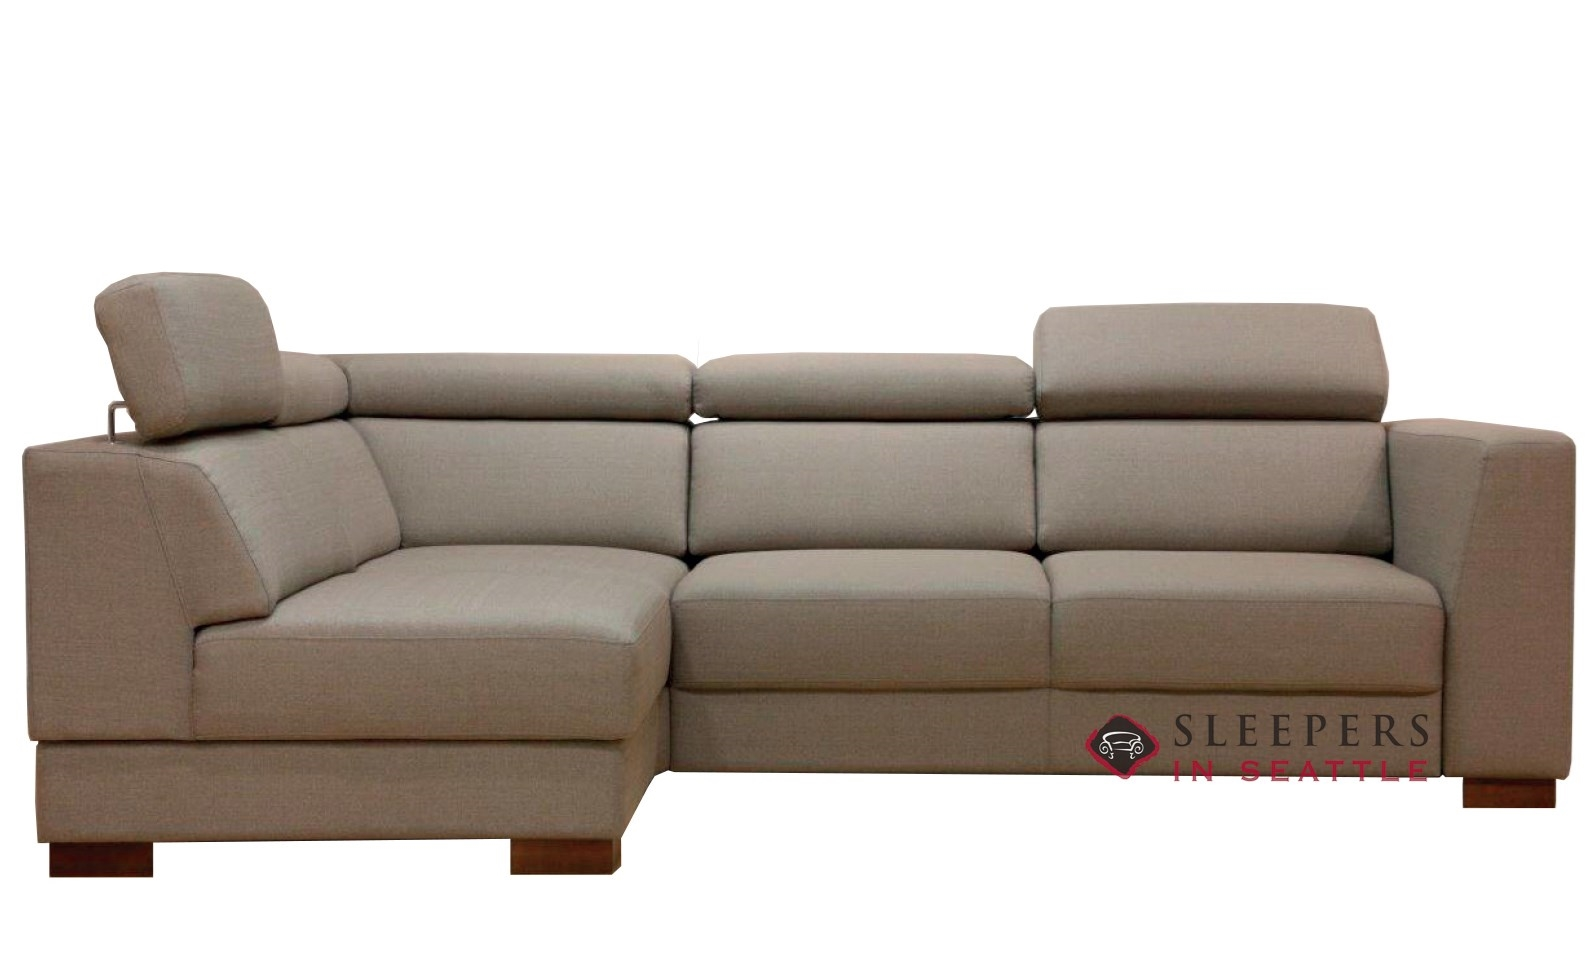 Quick Ship Halti Chaise Sectional Fabric Sofa By Luonto Fast Shipping Halti Chaise Sectional Sofa Bed Sleepersinseattle Com